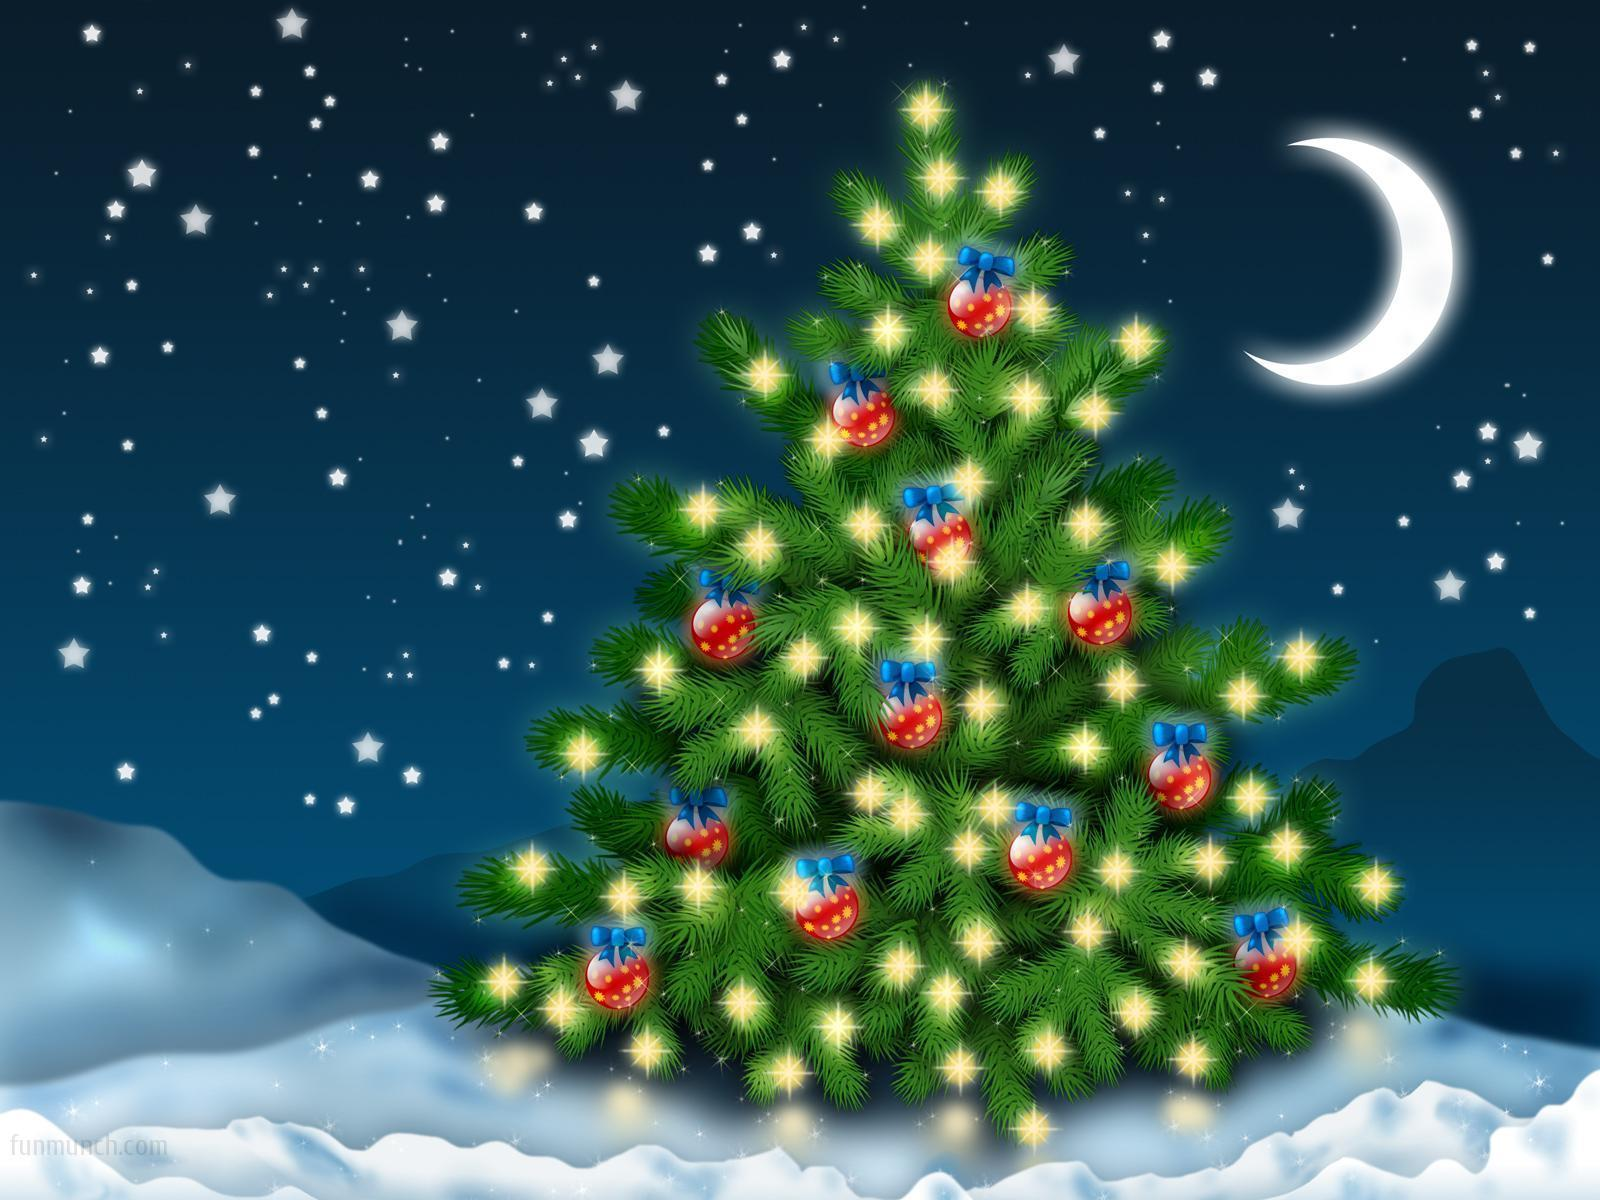 bright colored retro christmas tree clipart - Clipground